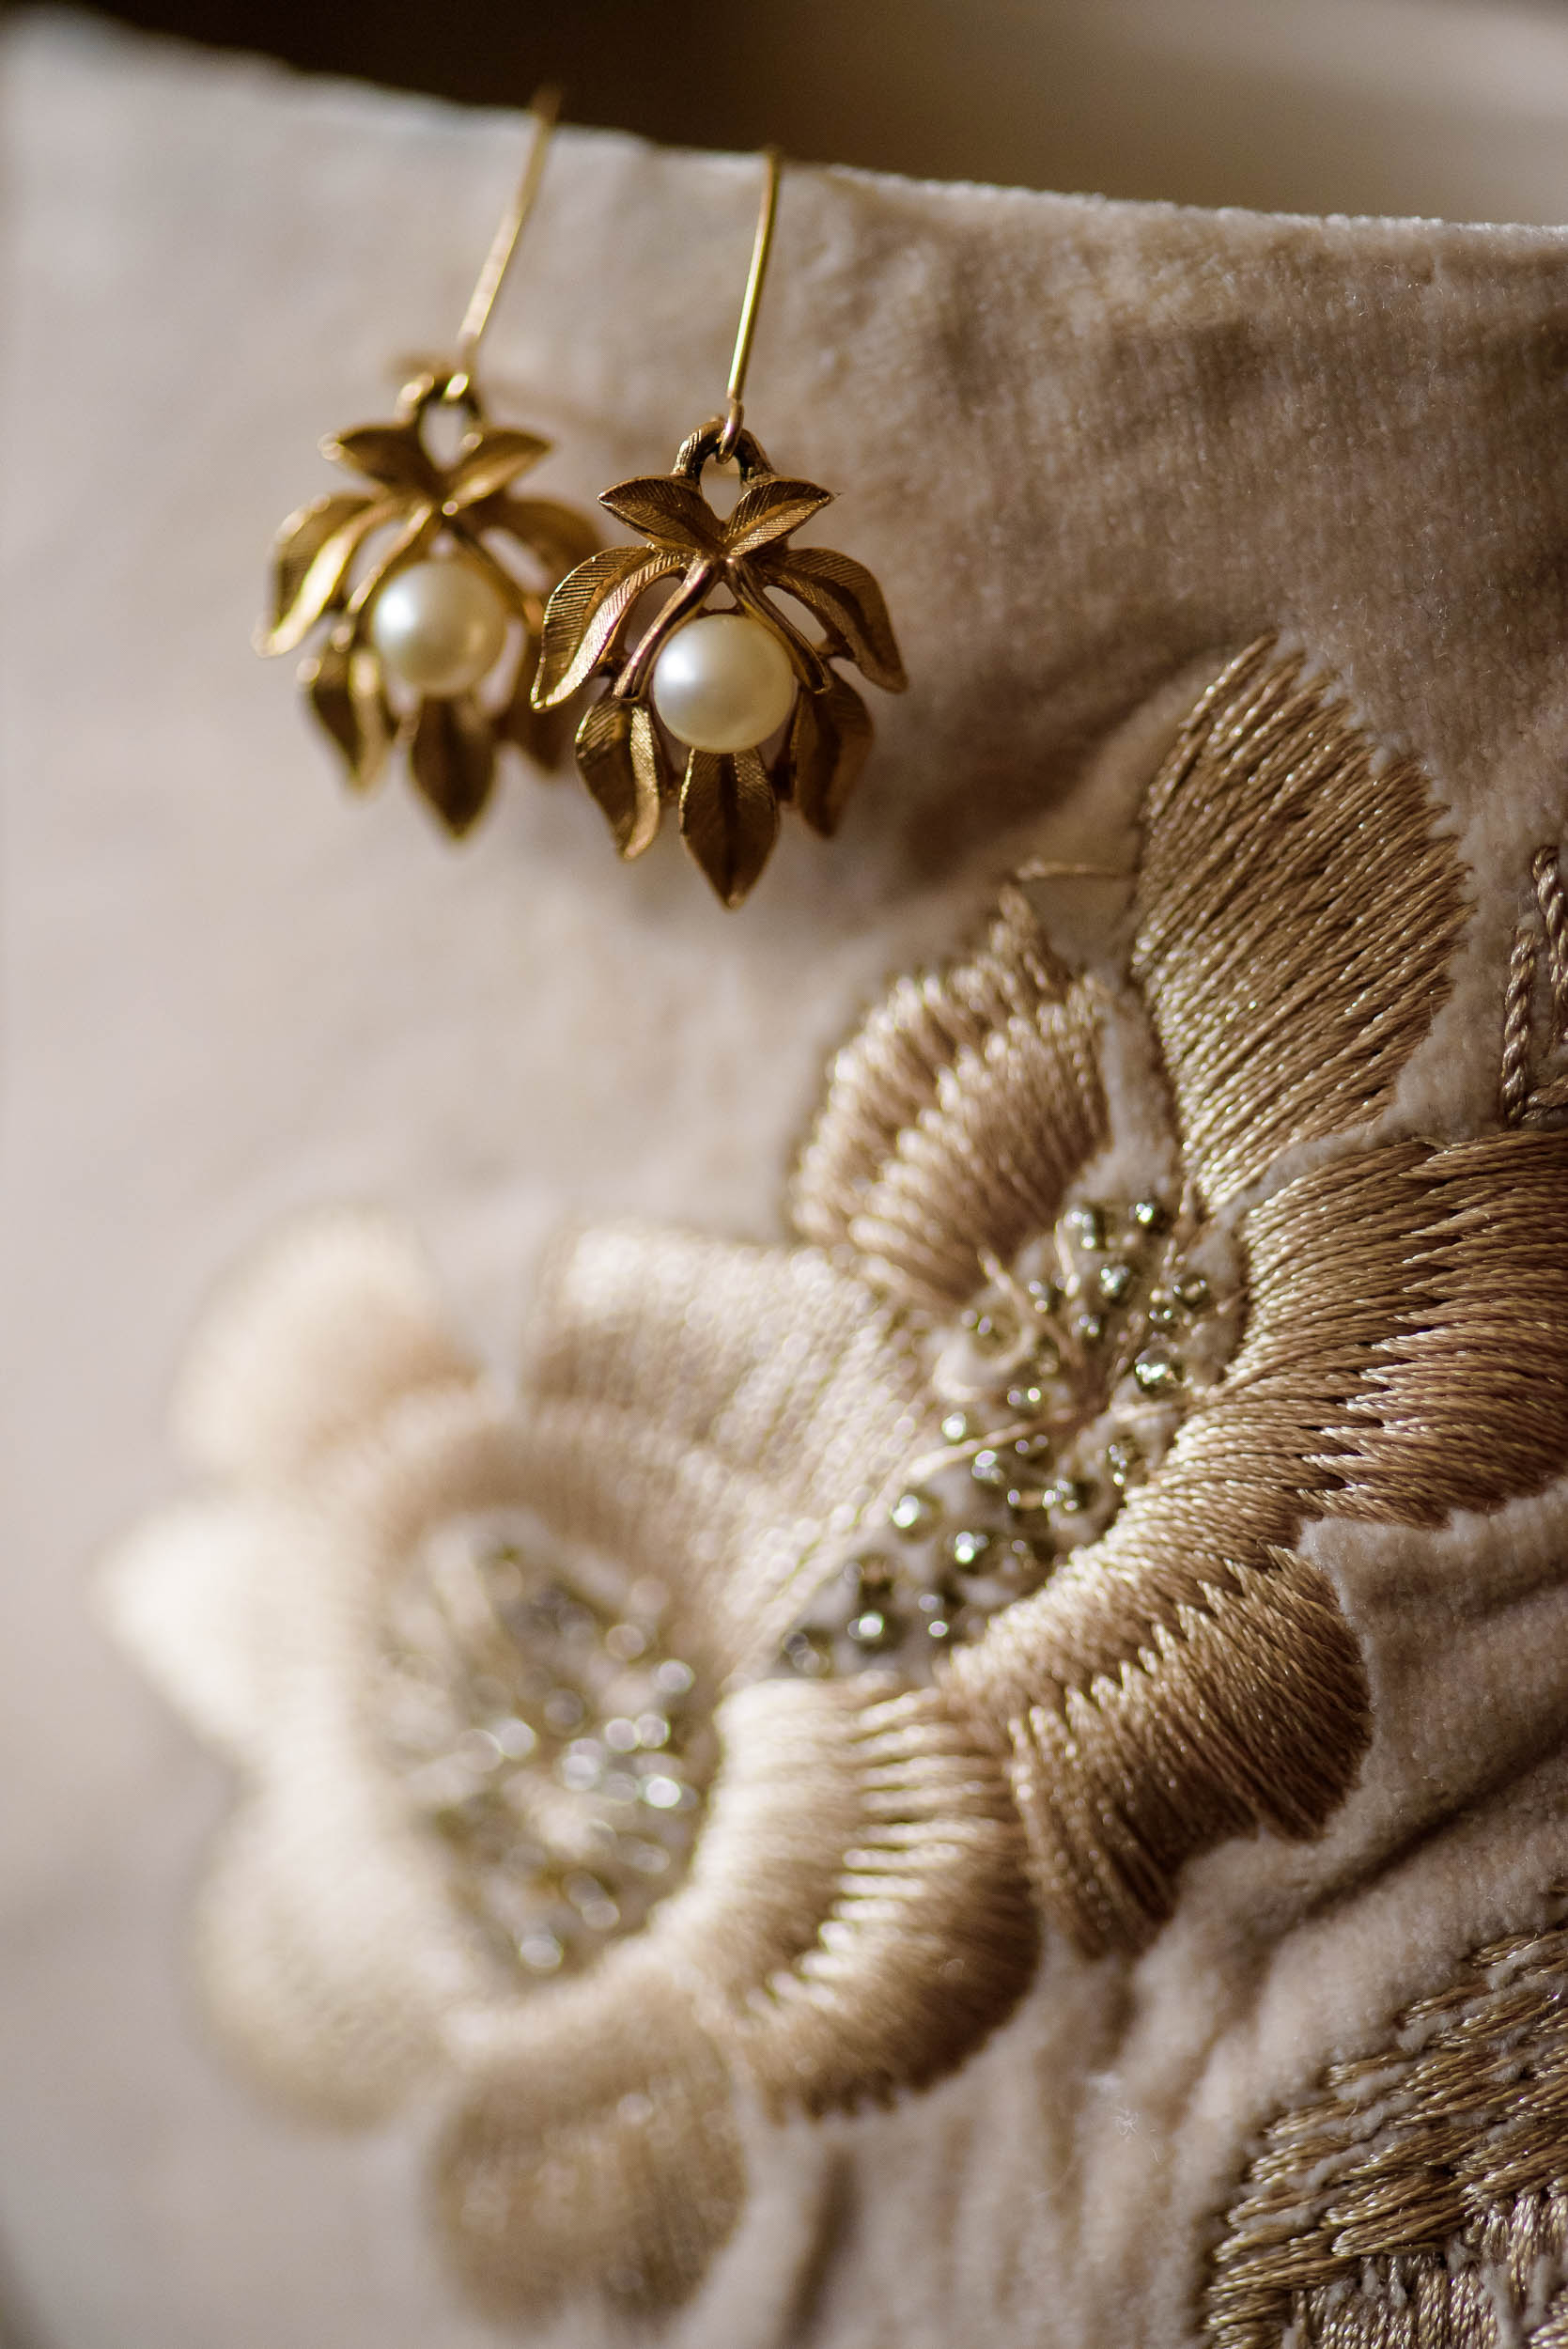 Detail photo of earring before a Loft on Lake Chicago wedding.